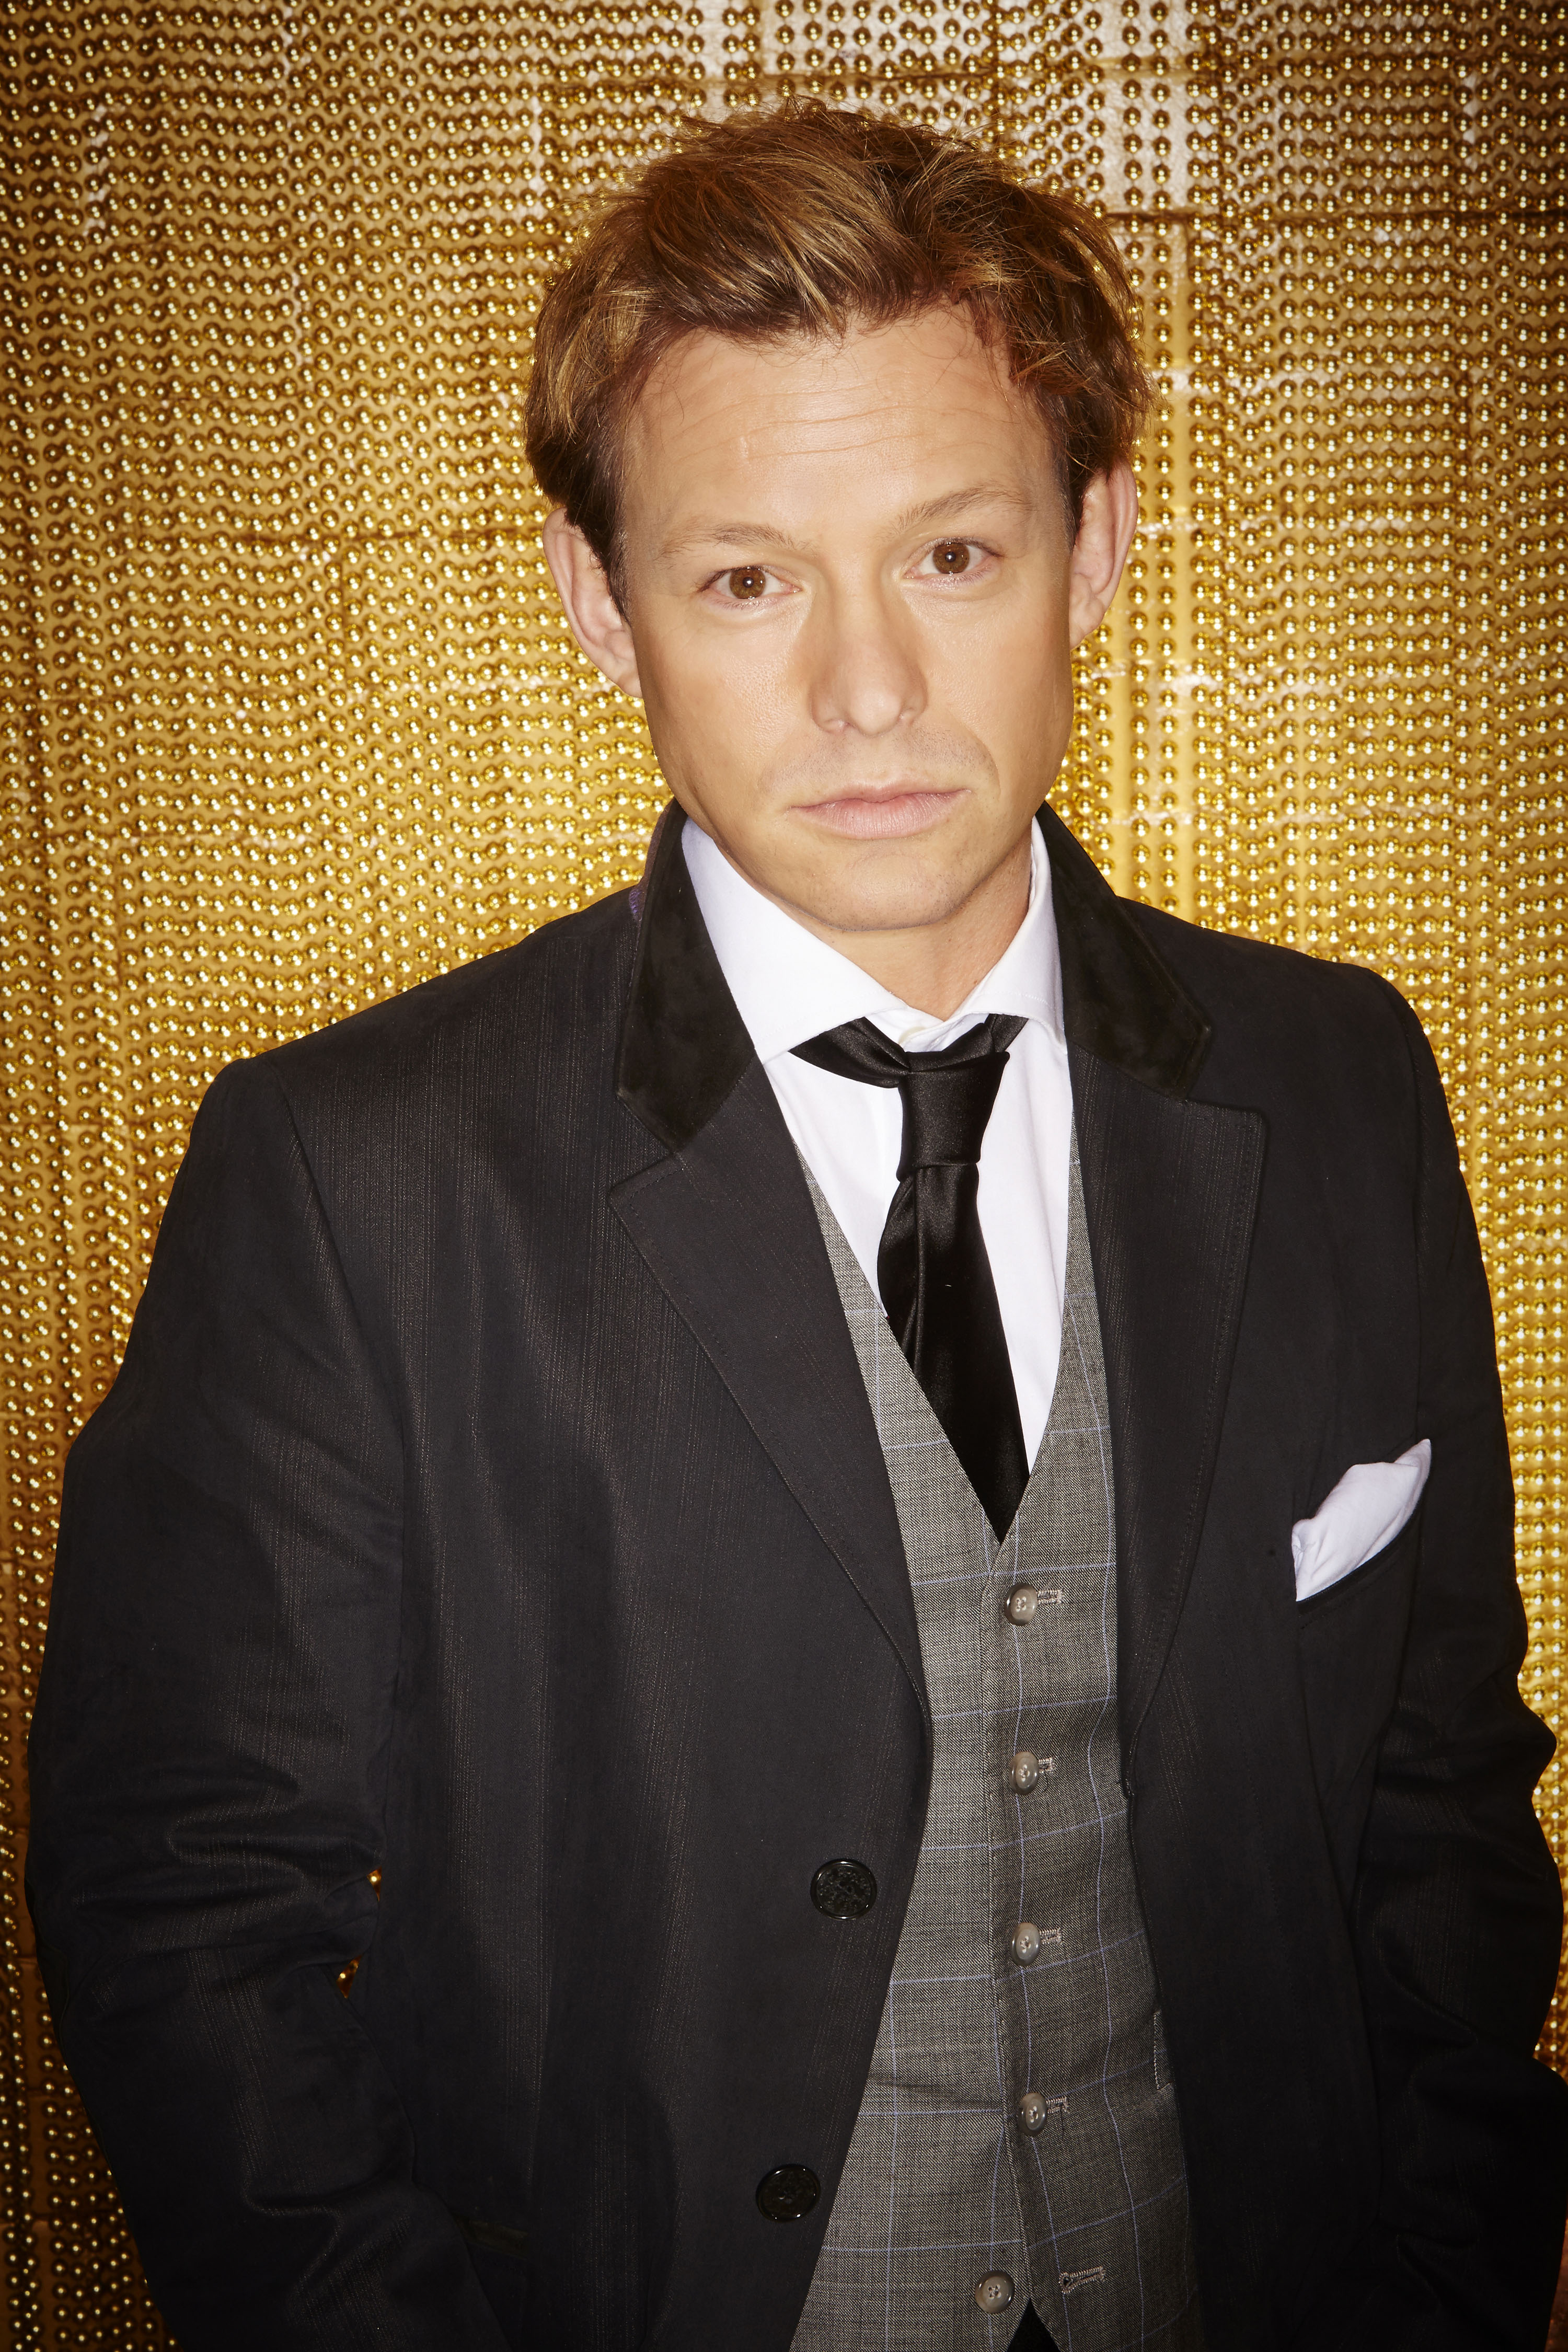 5th Story's Adam Rickitt: I wasted my youth – now we have to savour every second of The Big Reunion 2